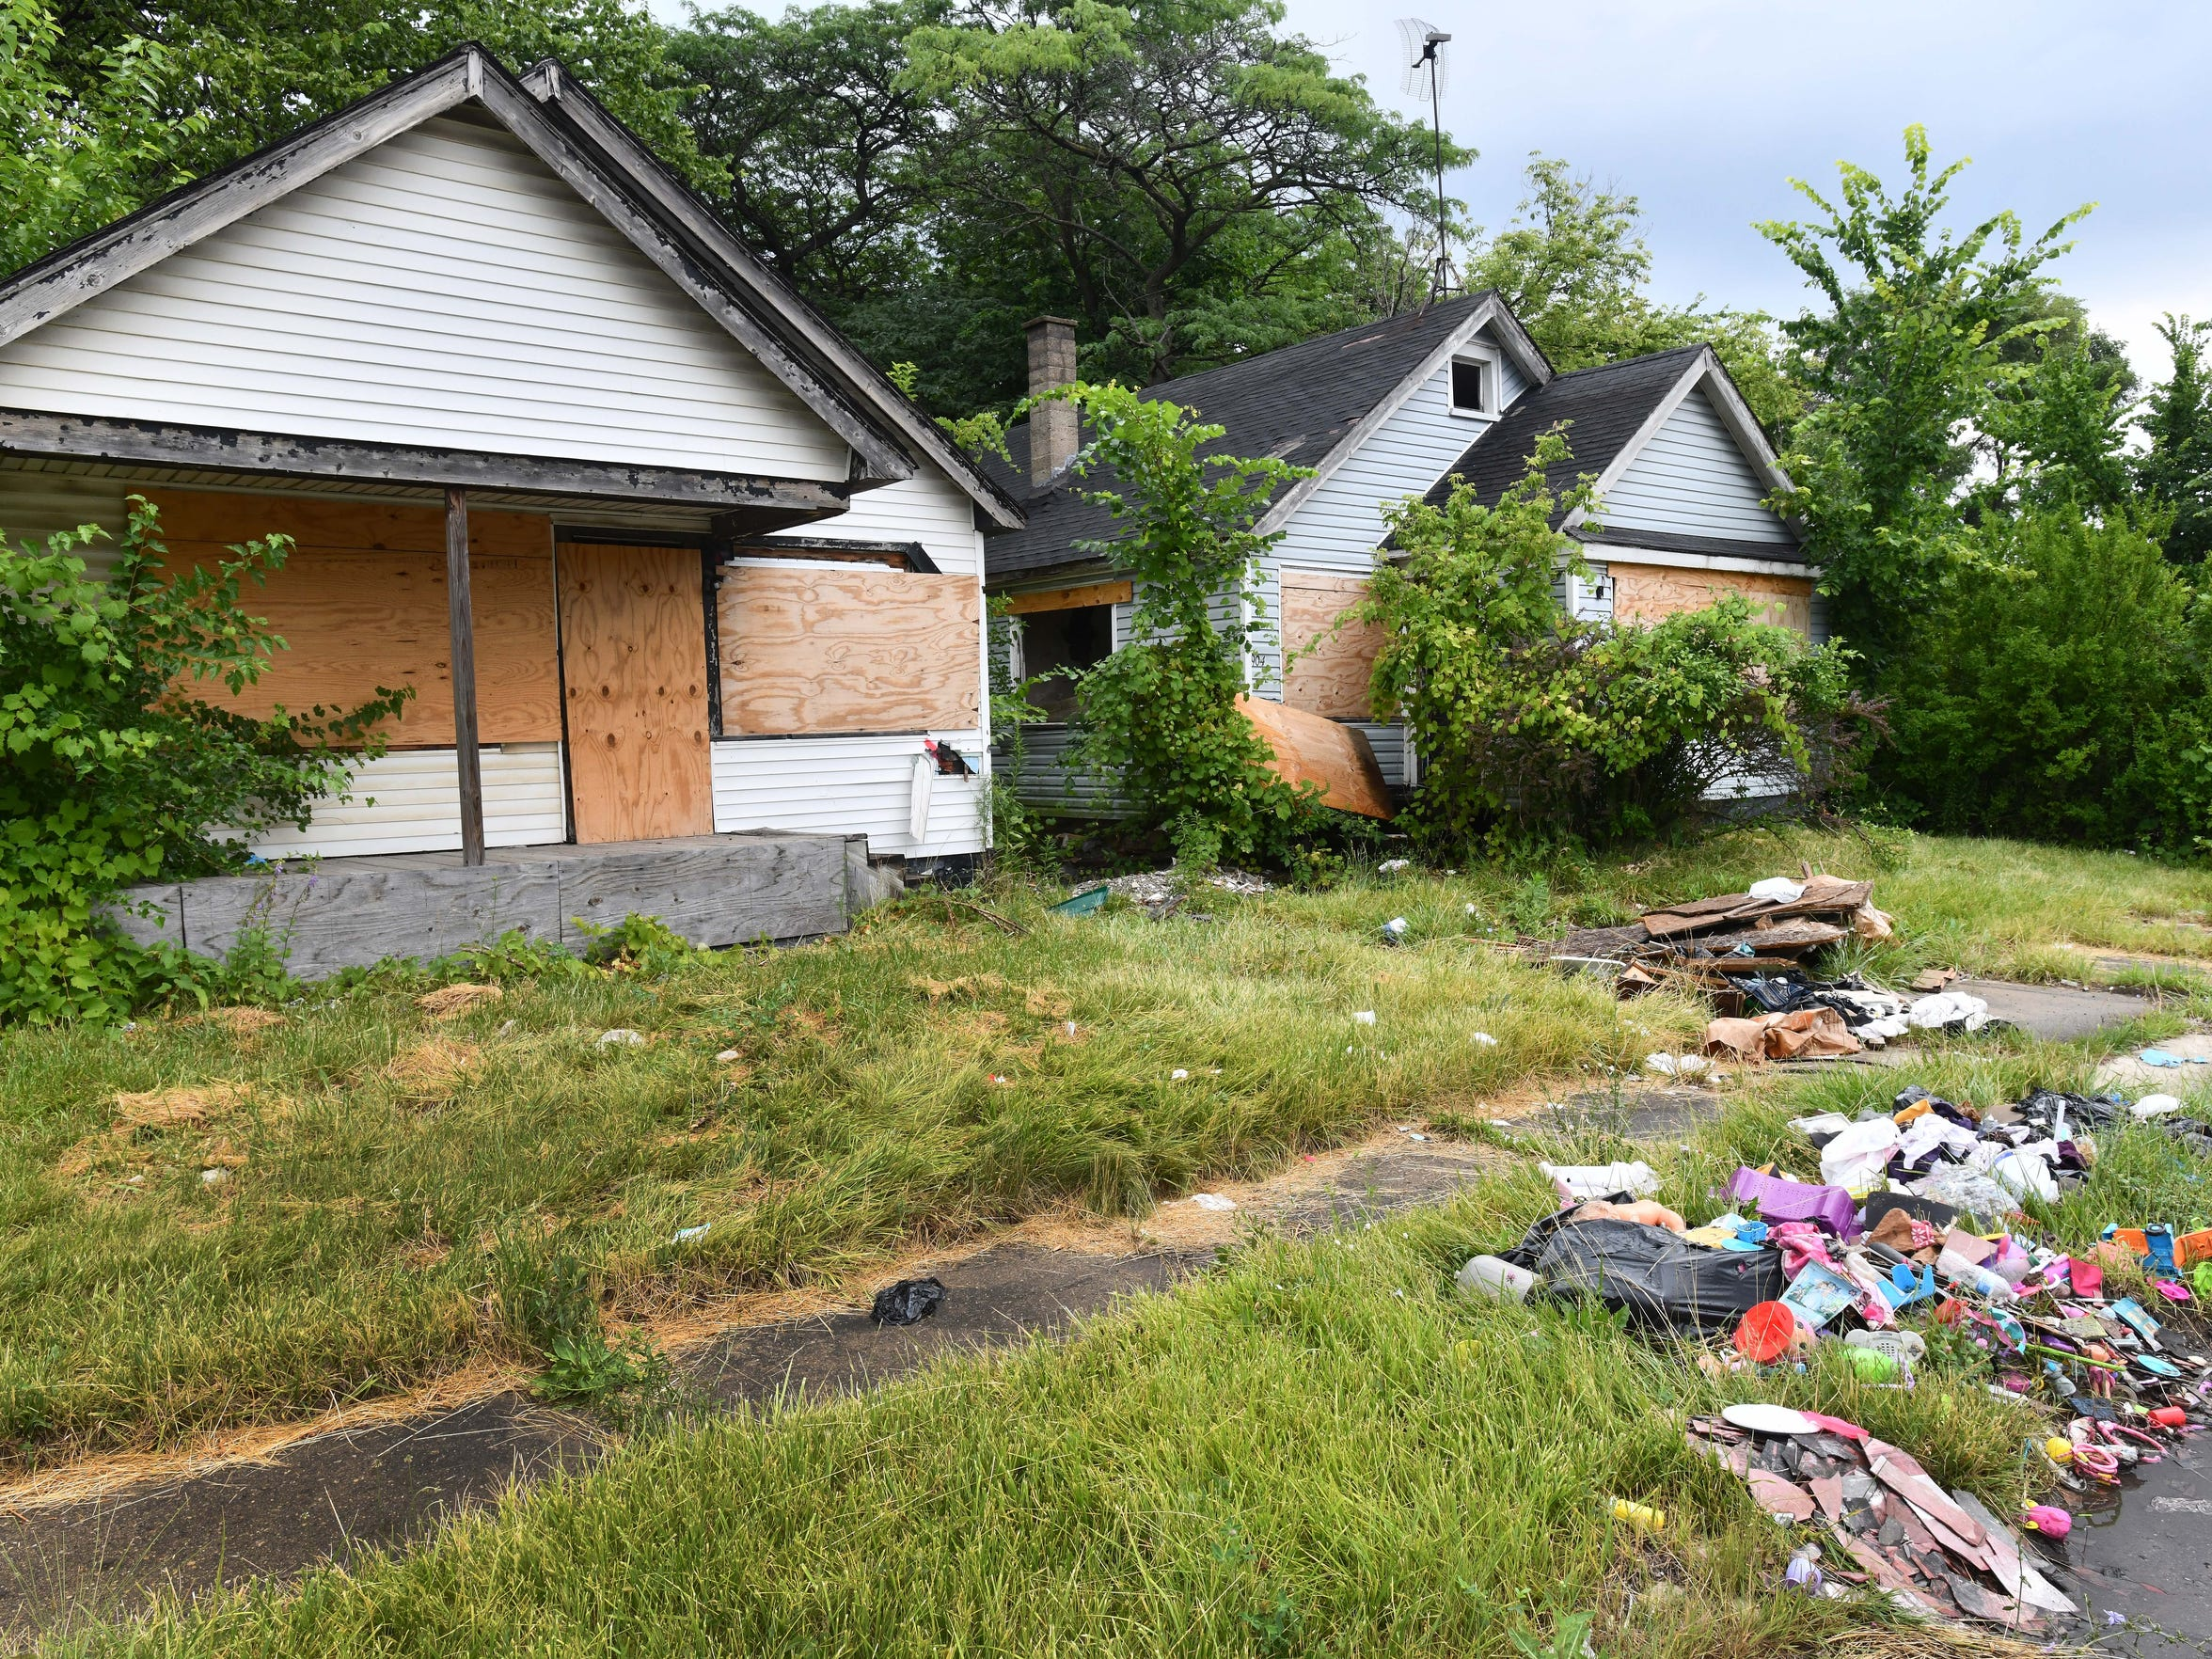 Even though empty homes are boarded up, the lack of